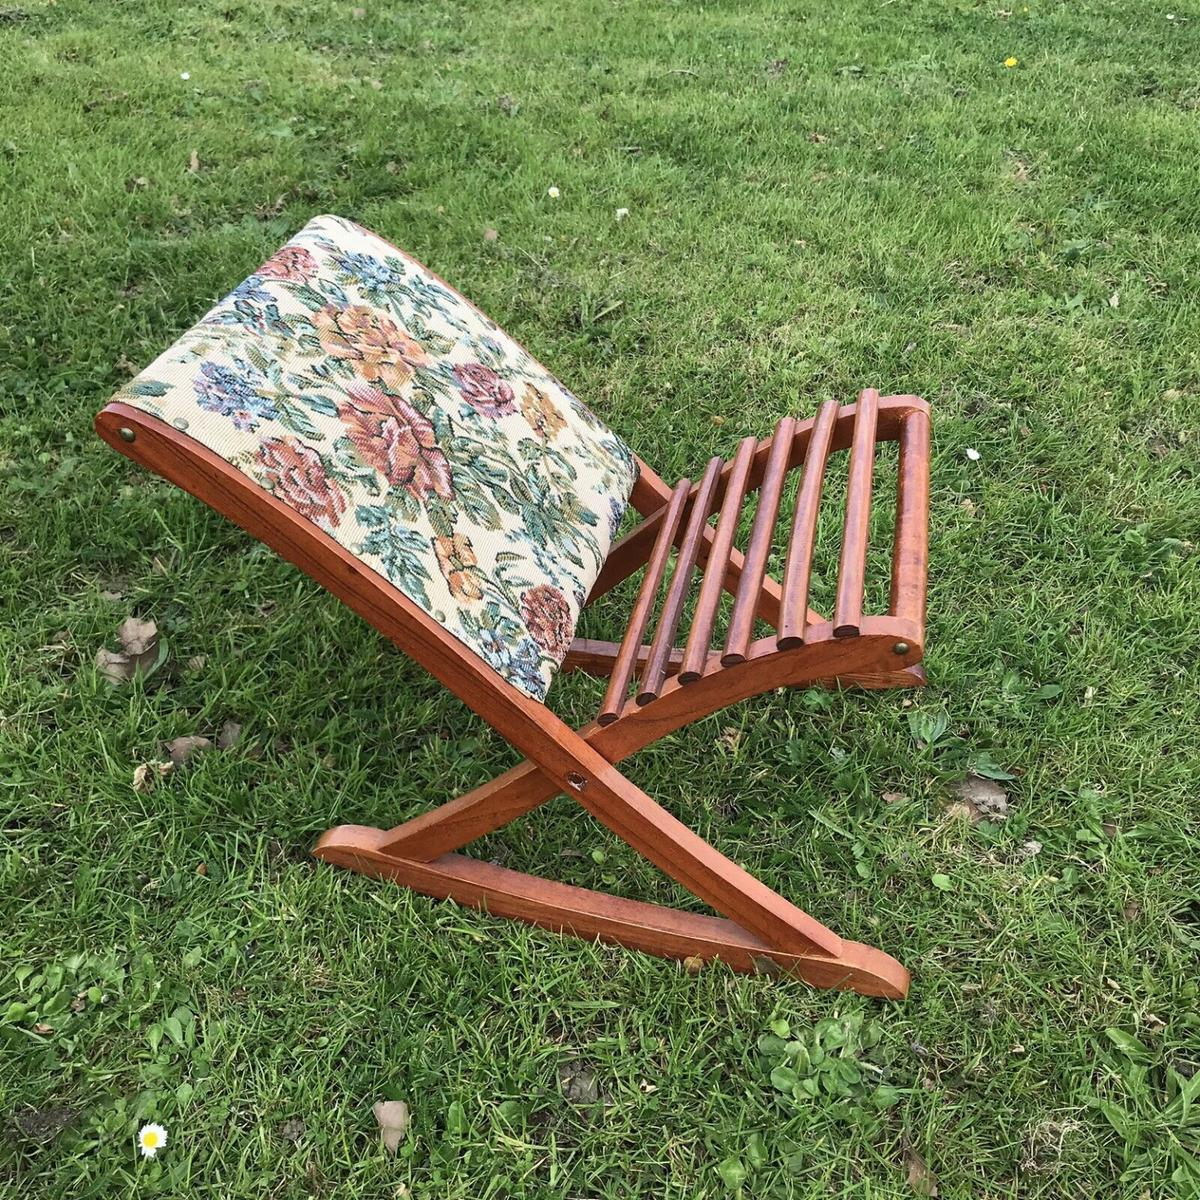 Awe Inspiring Vintage Rocking Footstool Wooden Tapestry Squirreltailoven Fun Painted Chair Ideas Images Squirreltailovenorg